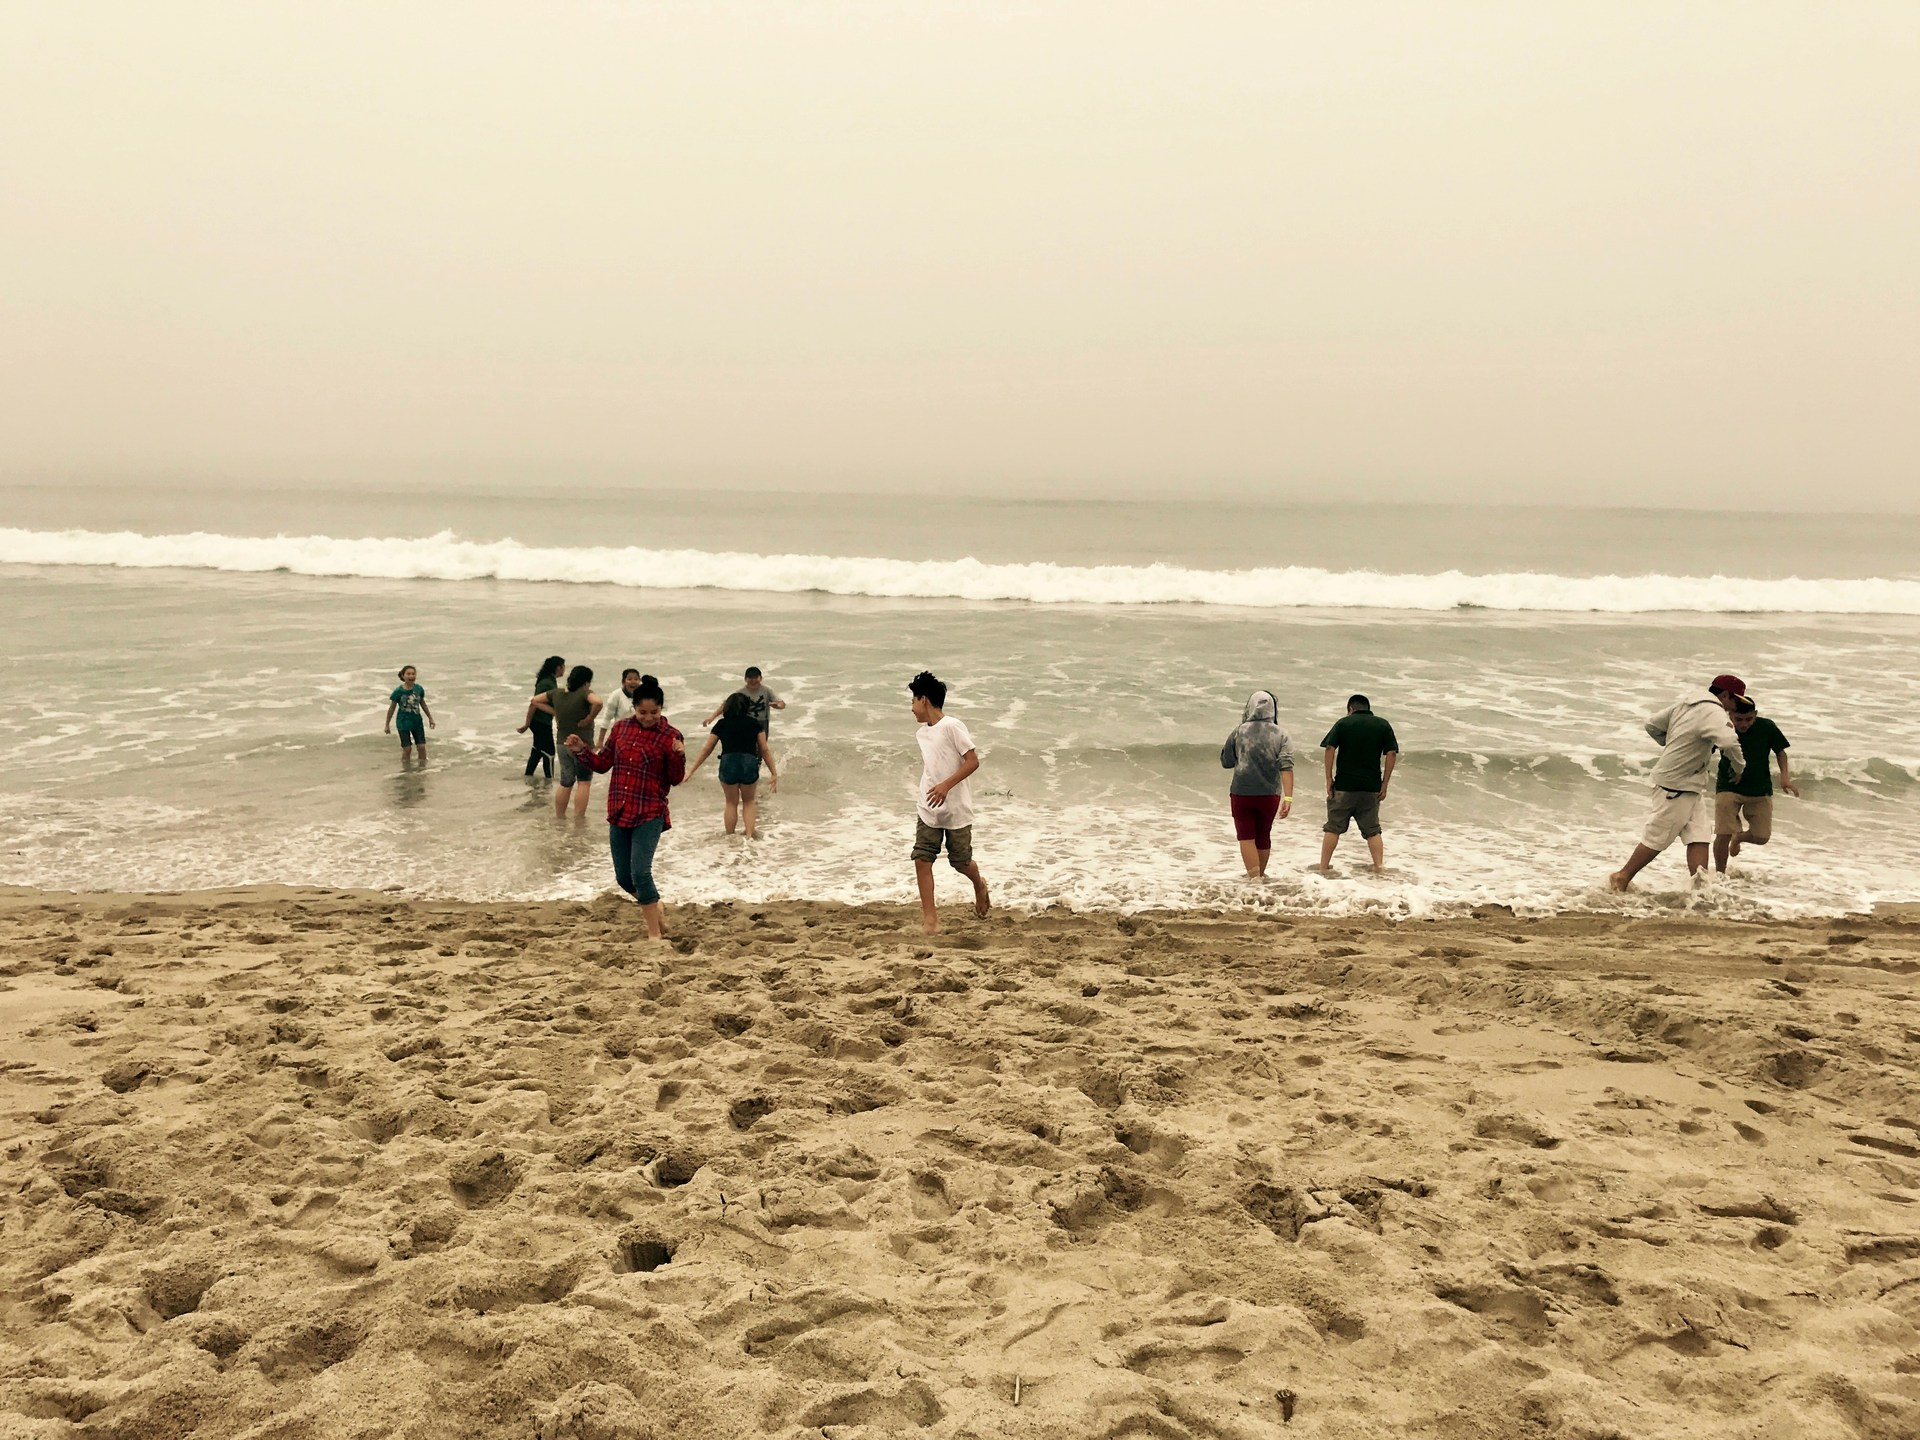 Students play on the beach